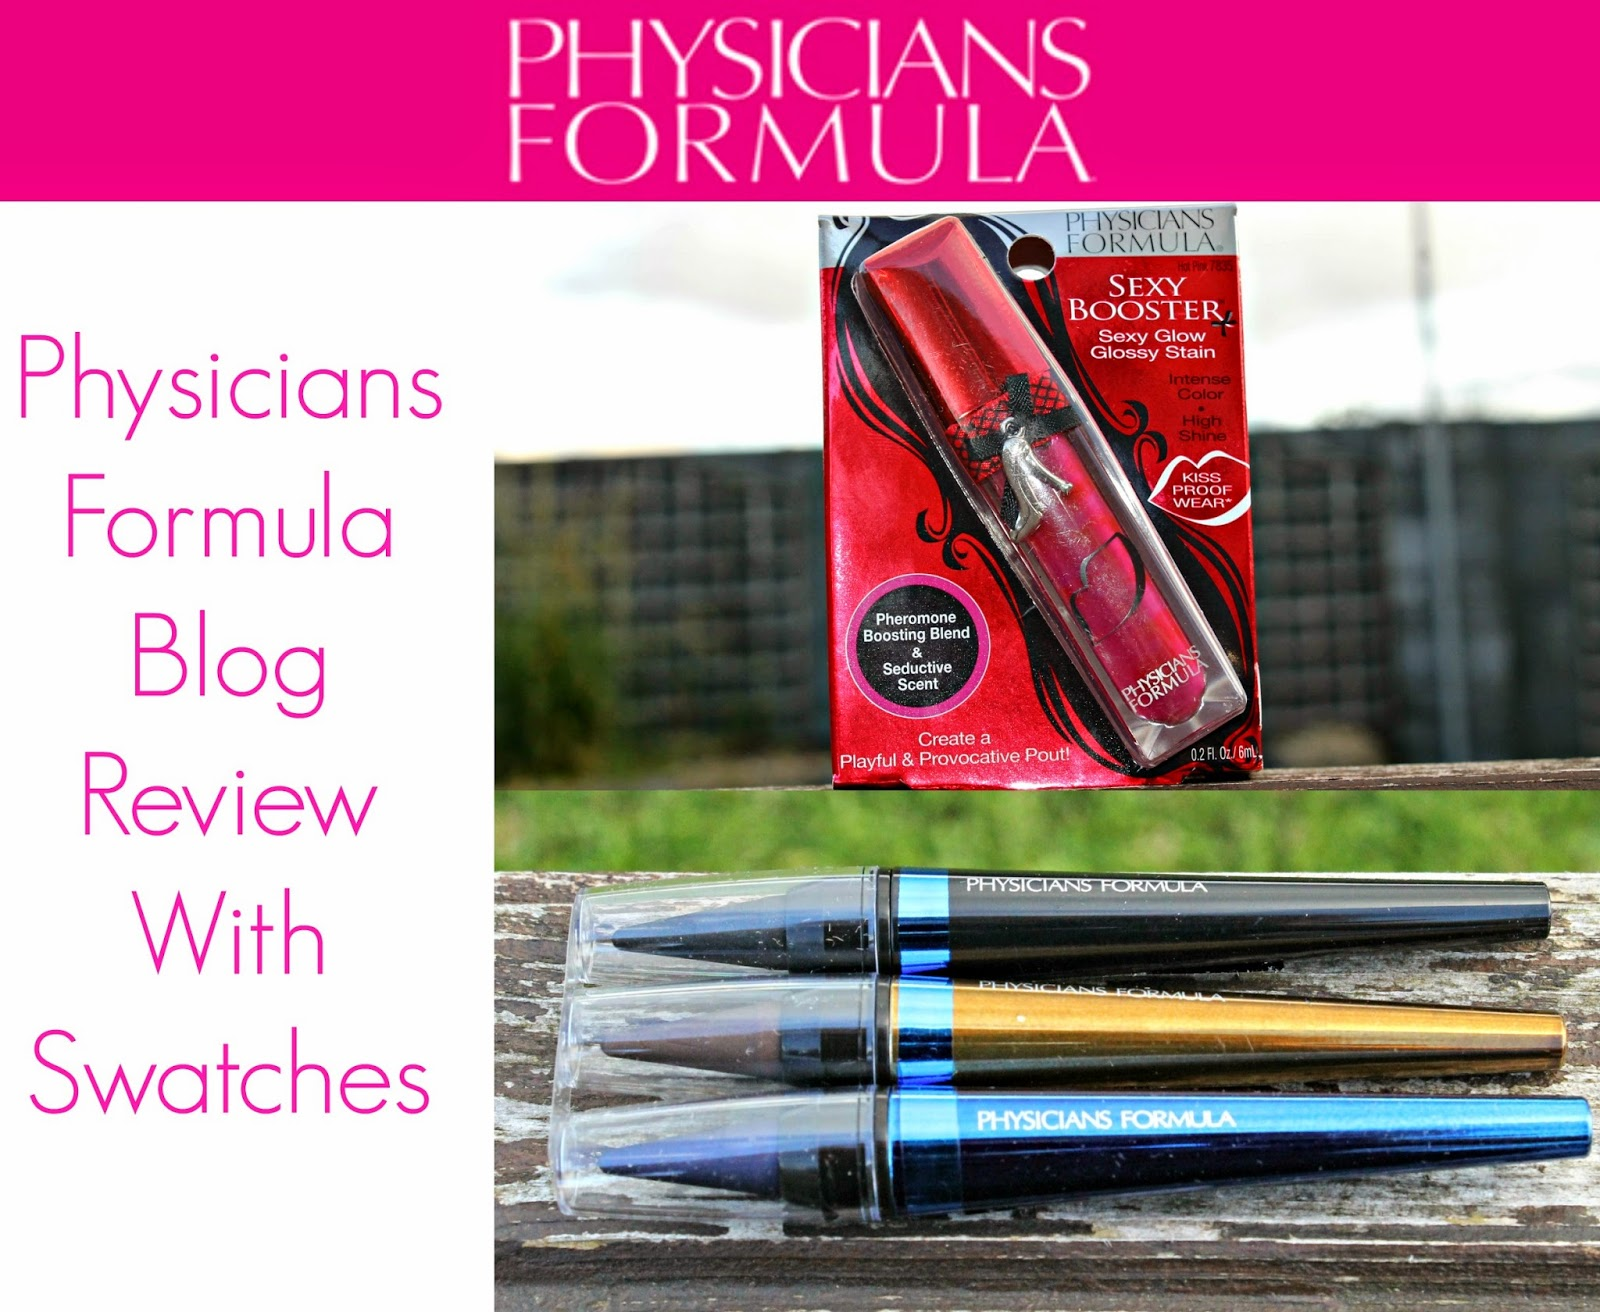 Physicians Formula Blog Review with Swatches